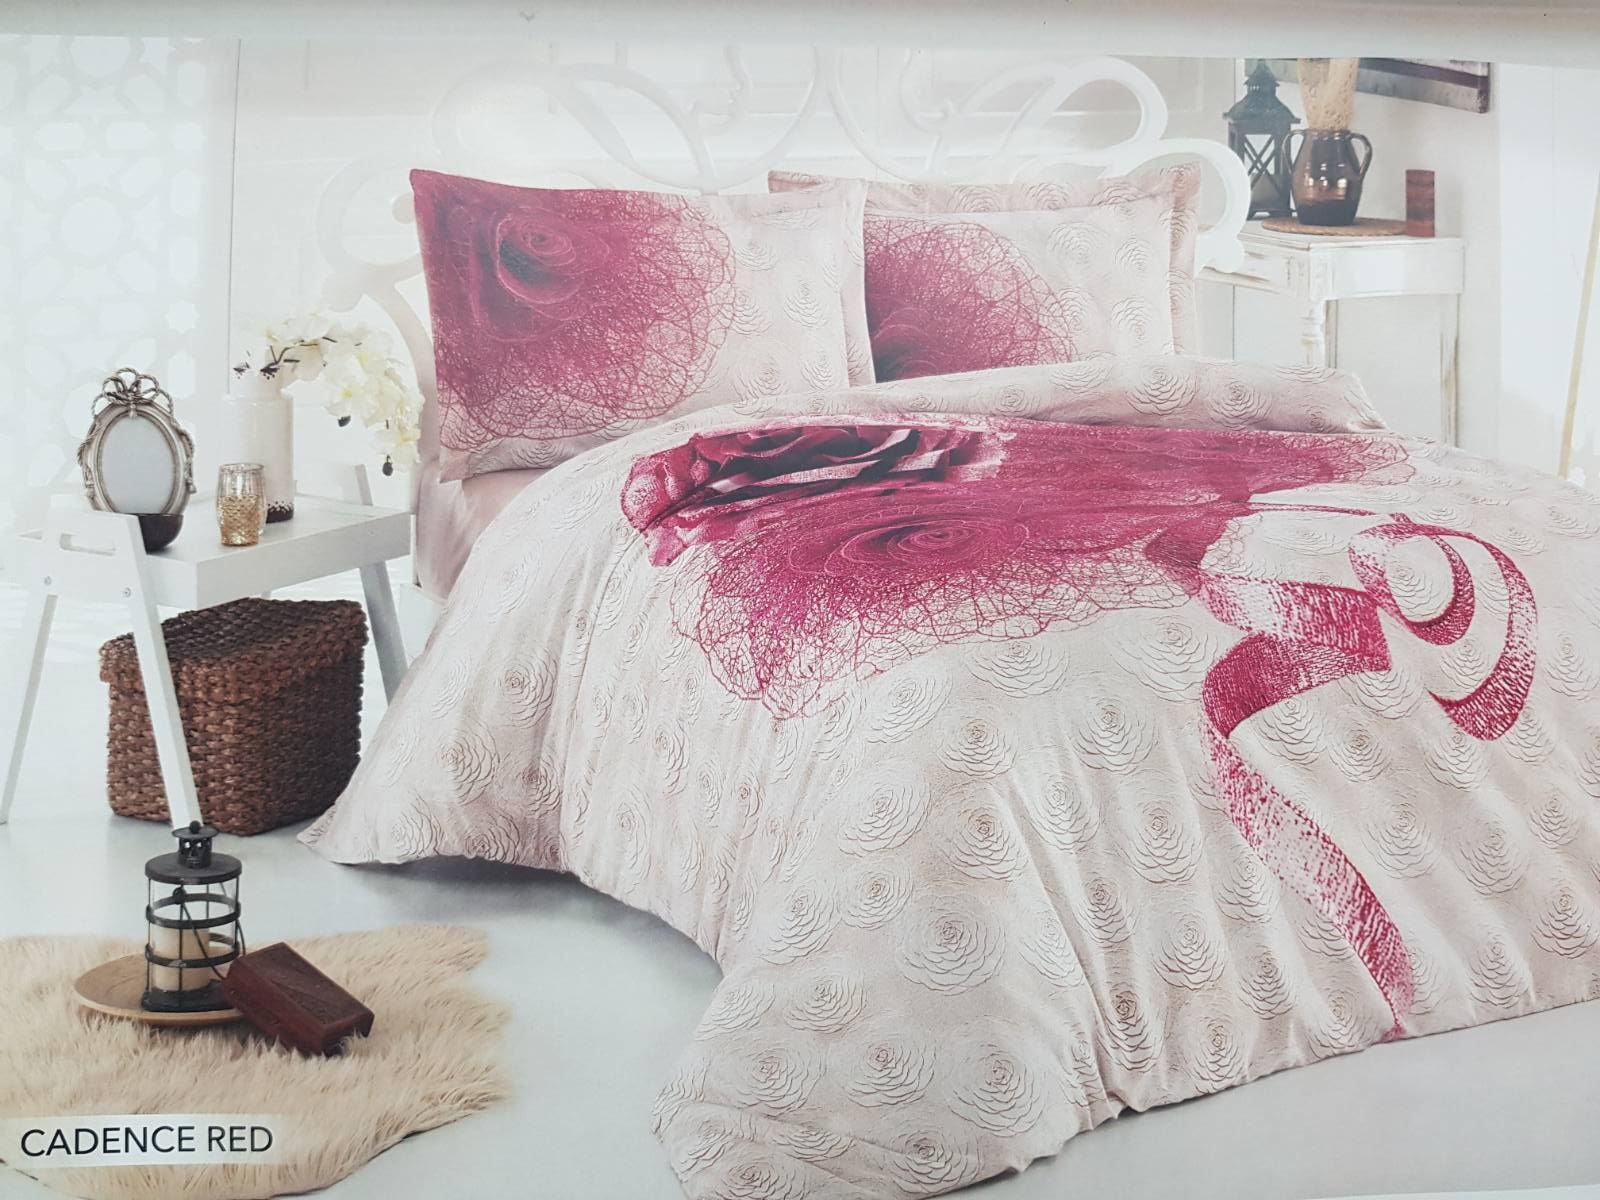 Housse de couette Cadence Red